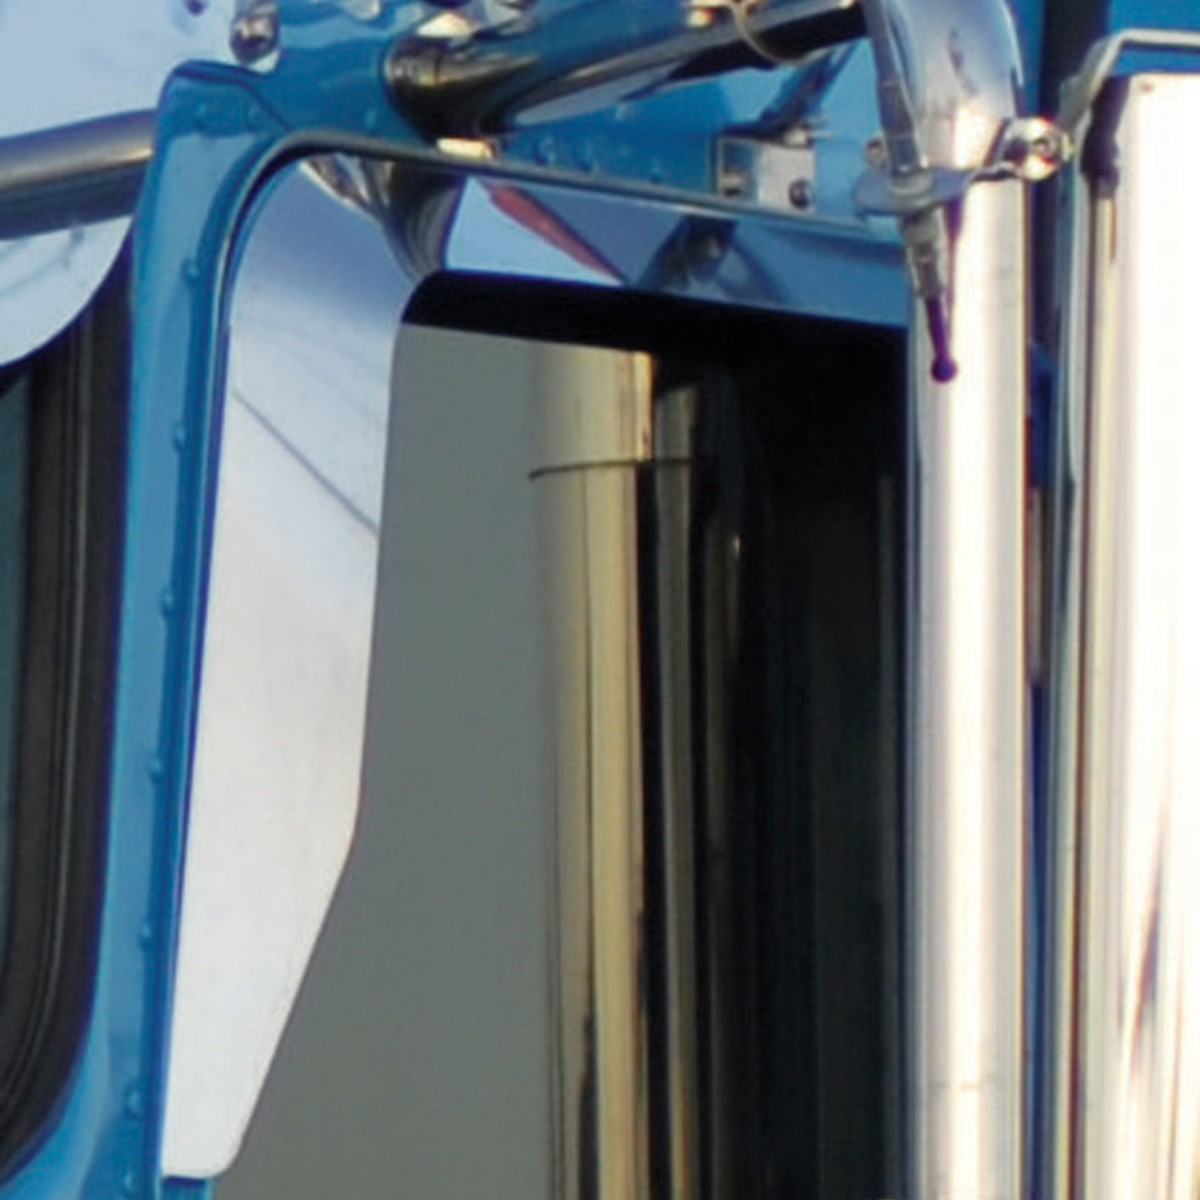 Western Star 4900 >> KW. Door Window Shade - Without Convex Mirror Arm Cutout ...